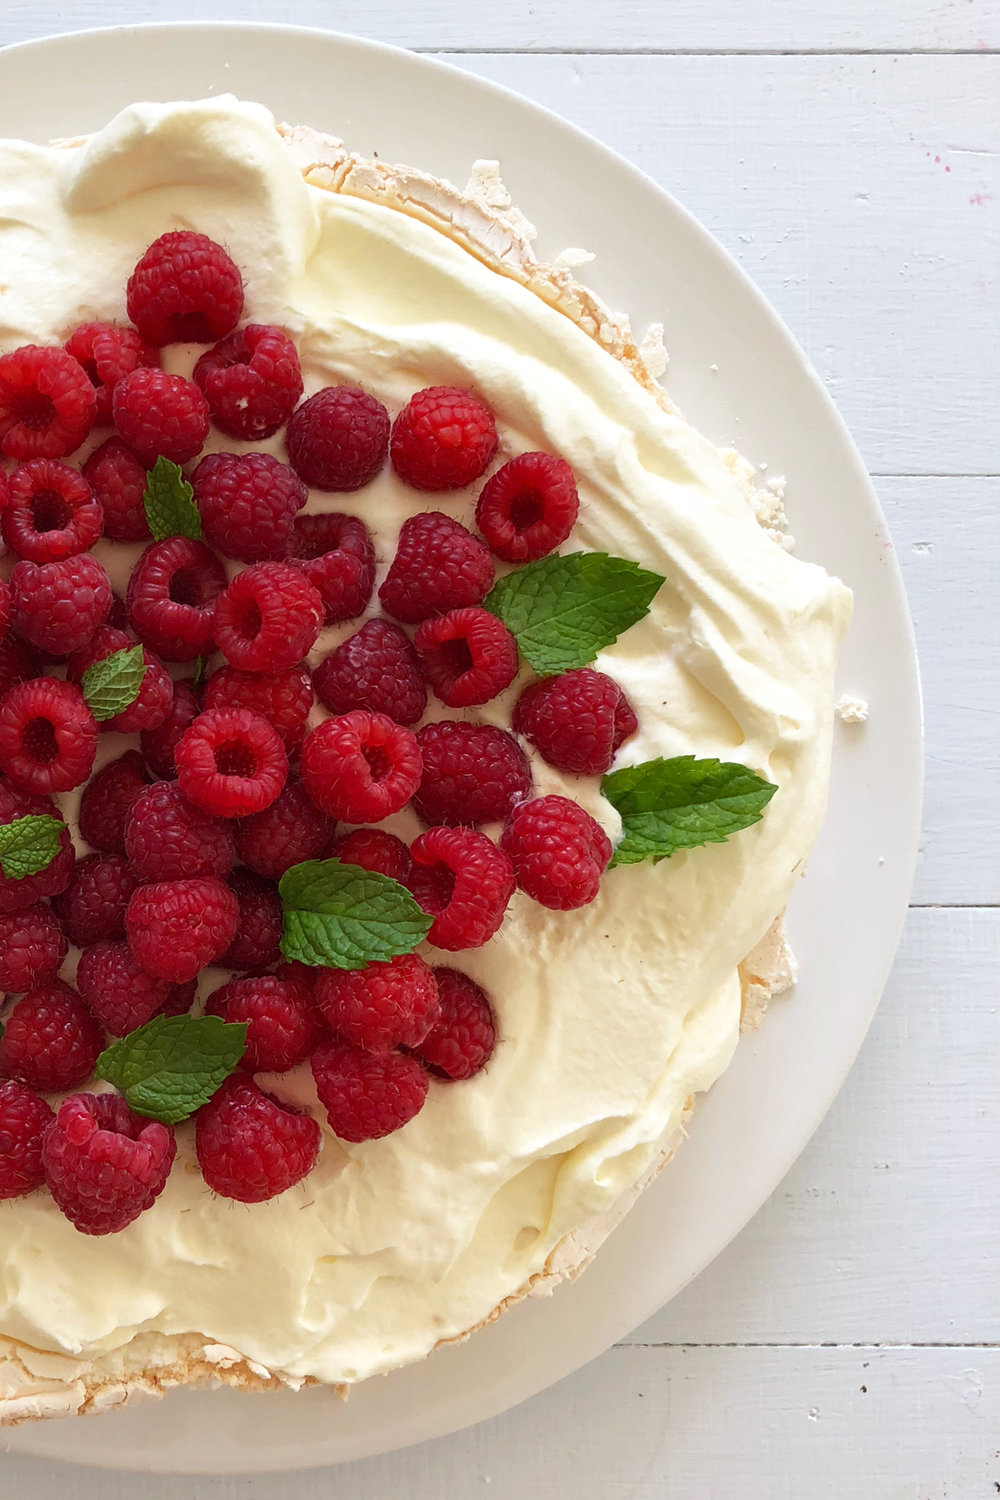 CLICK TO BUY:  Woolworths Pavlova Base, $6 ;  Woolworths Thickened Cream, $2.60;   Driscols Fresh Raspberries, $4.60 (subject to change)